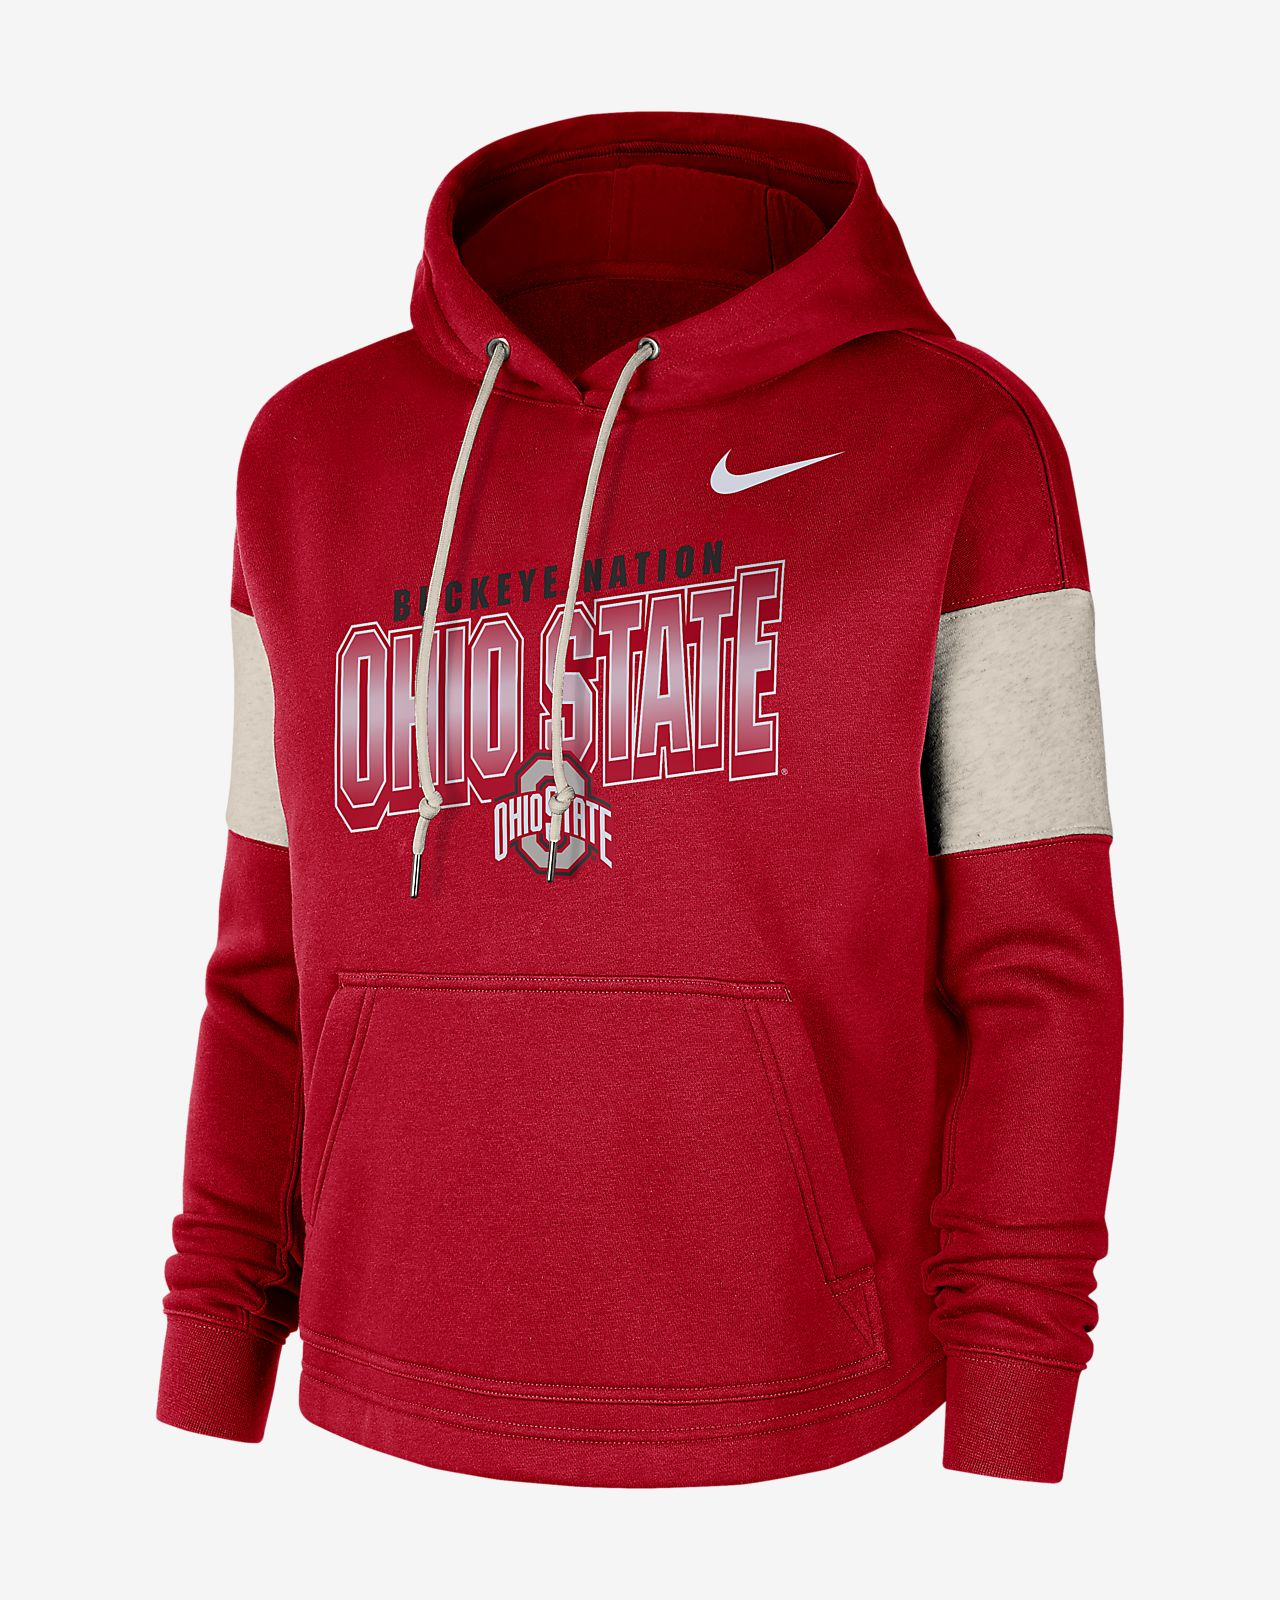 Nike College (Ohio State) Women's Pullover Hoodie